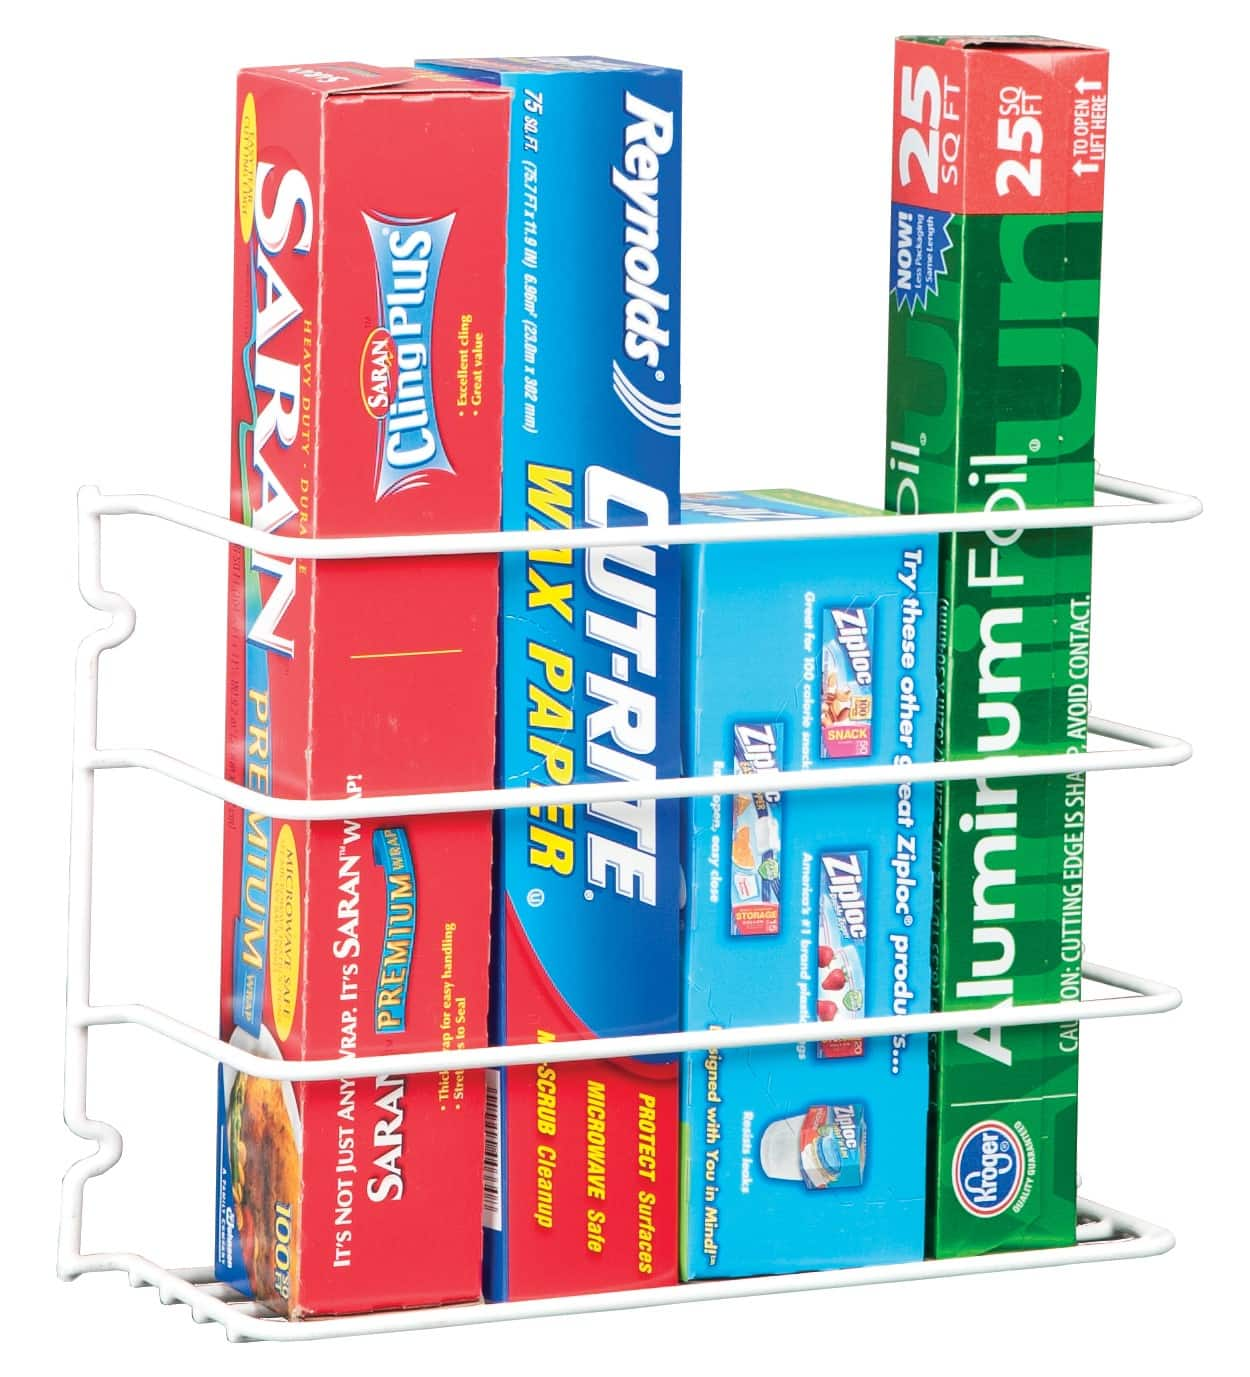 Panacea Kitchen Foil and Wrap Rack for $2.64